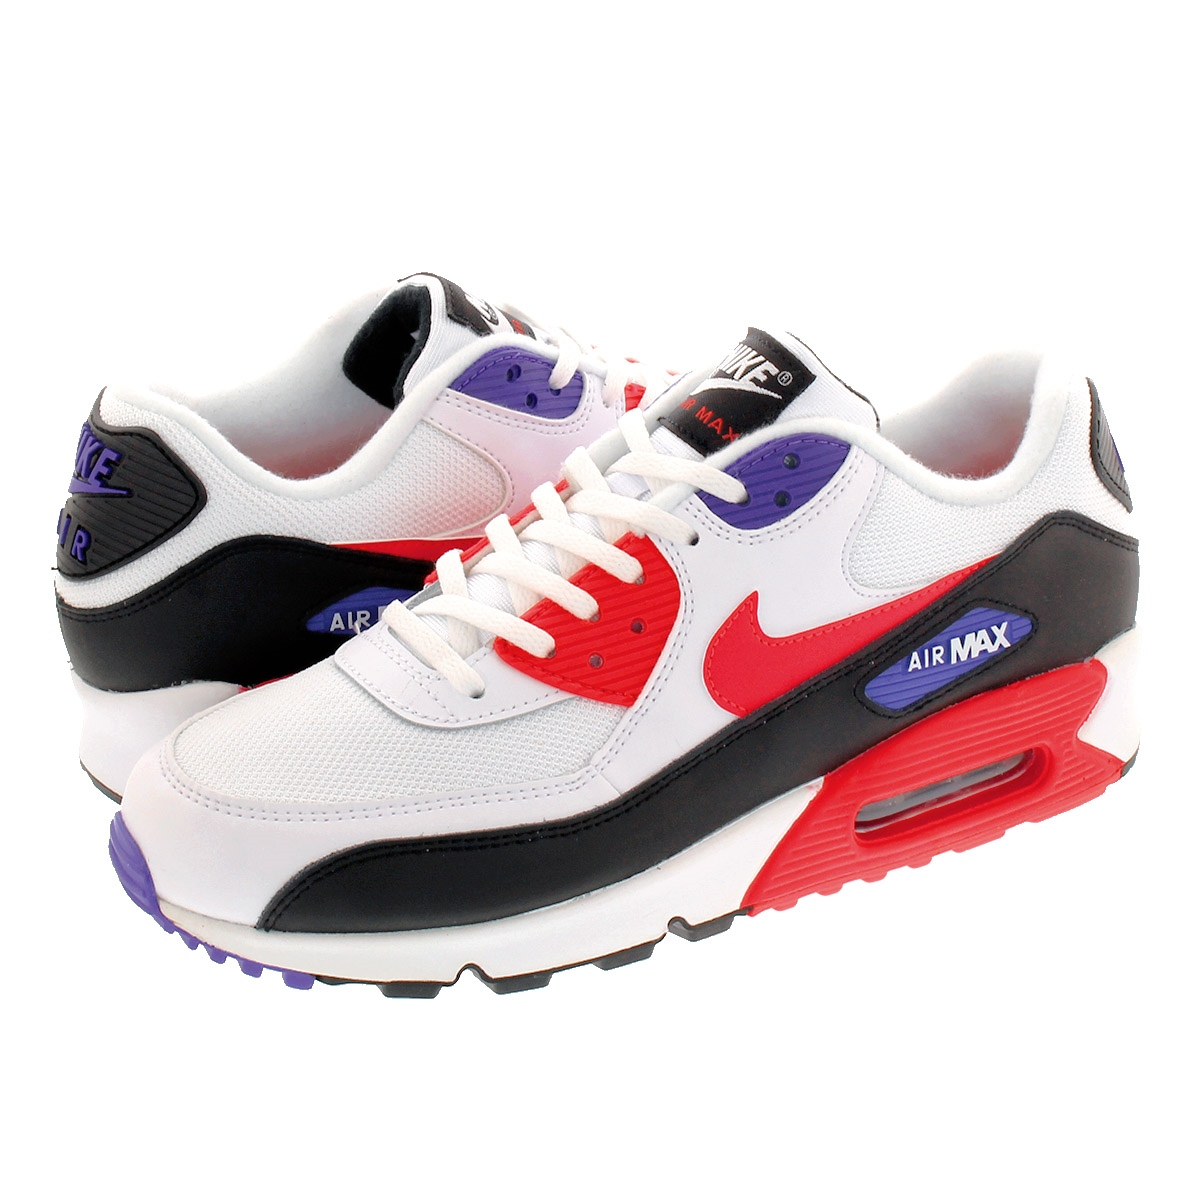 Nike Air Max 90 Essential white, red and black sneaker